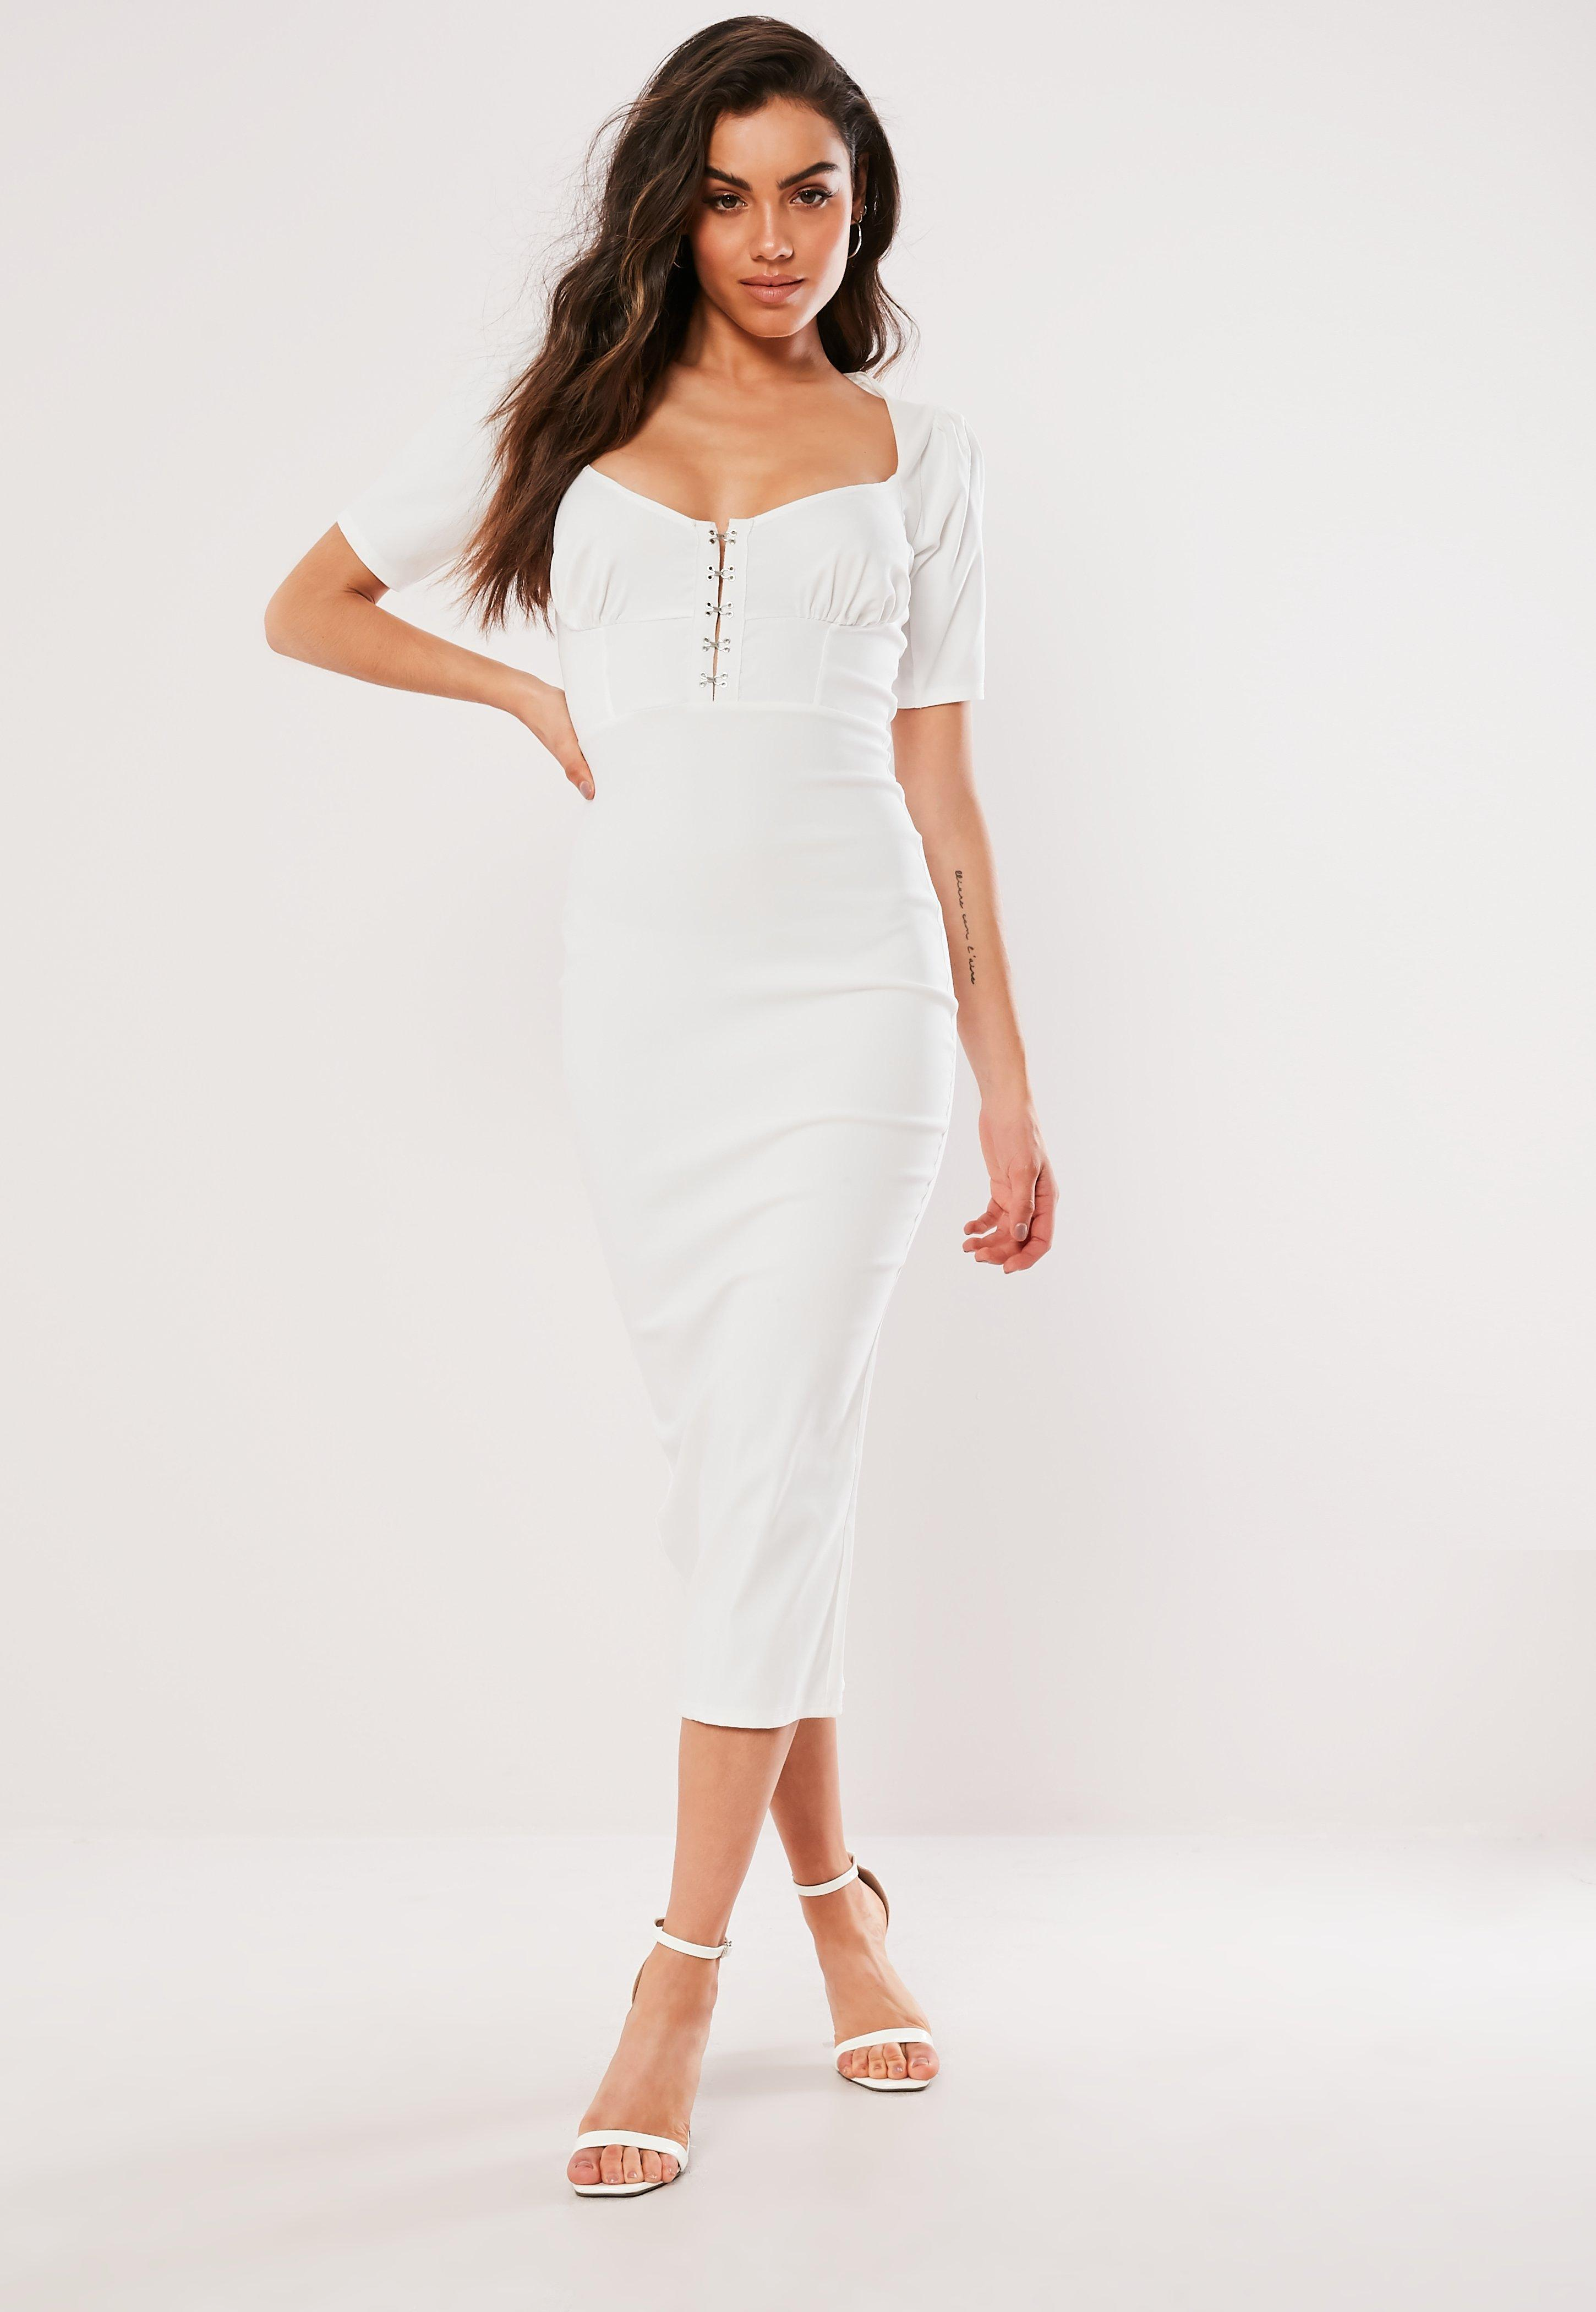 6051133aed Lyst - Missguided White Milkmaid Hook And Eye Bodycon Midi Dress in ...